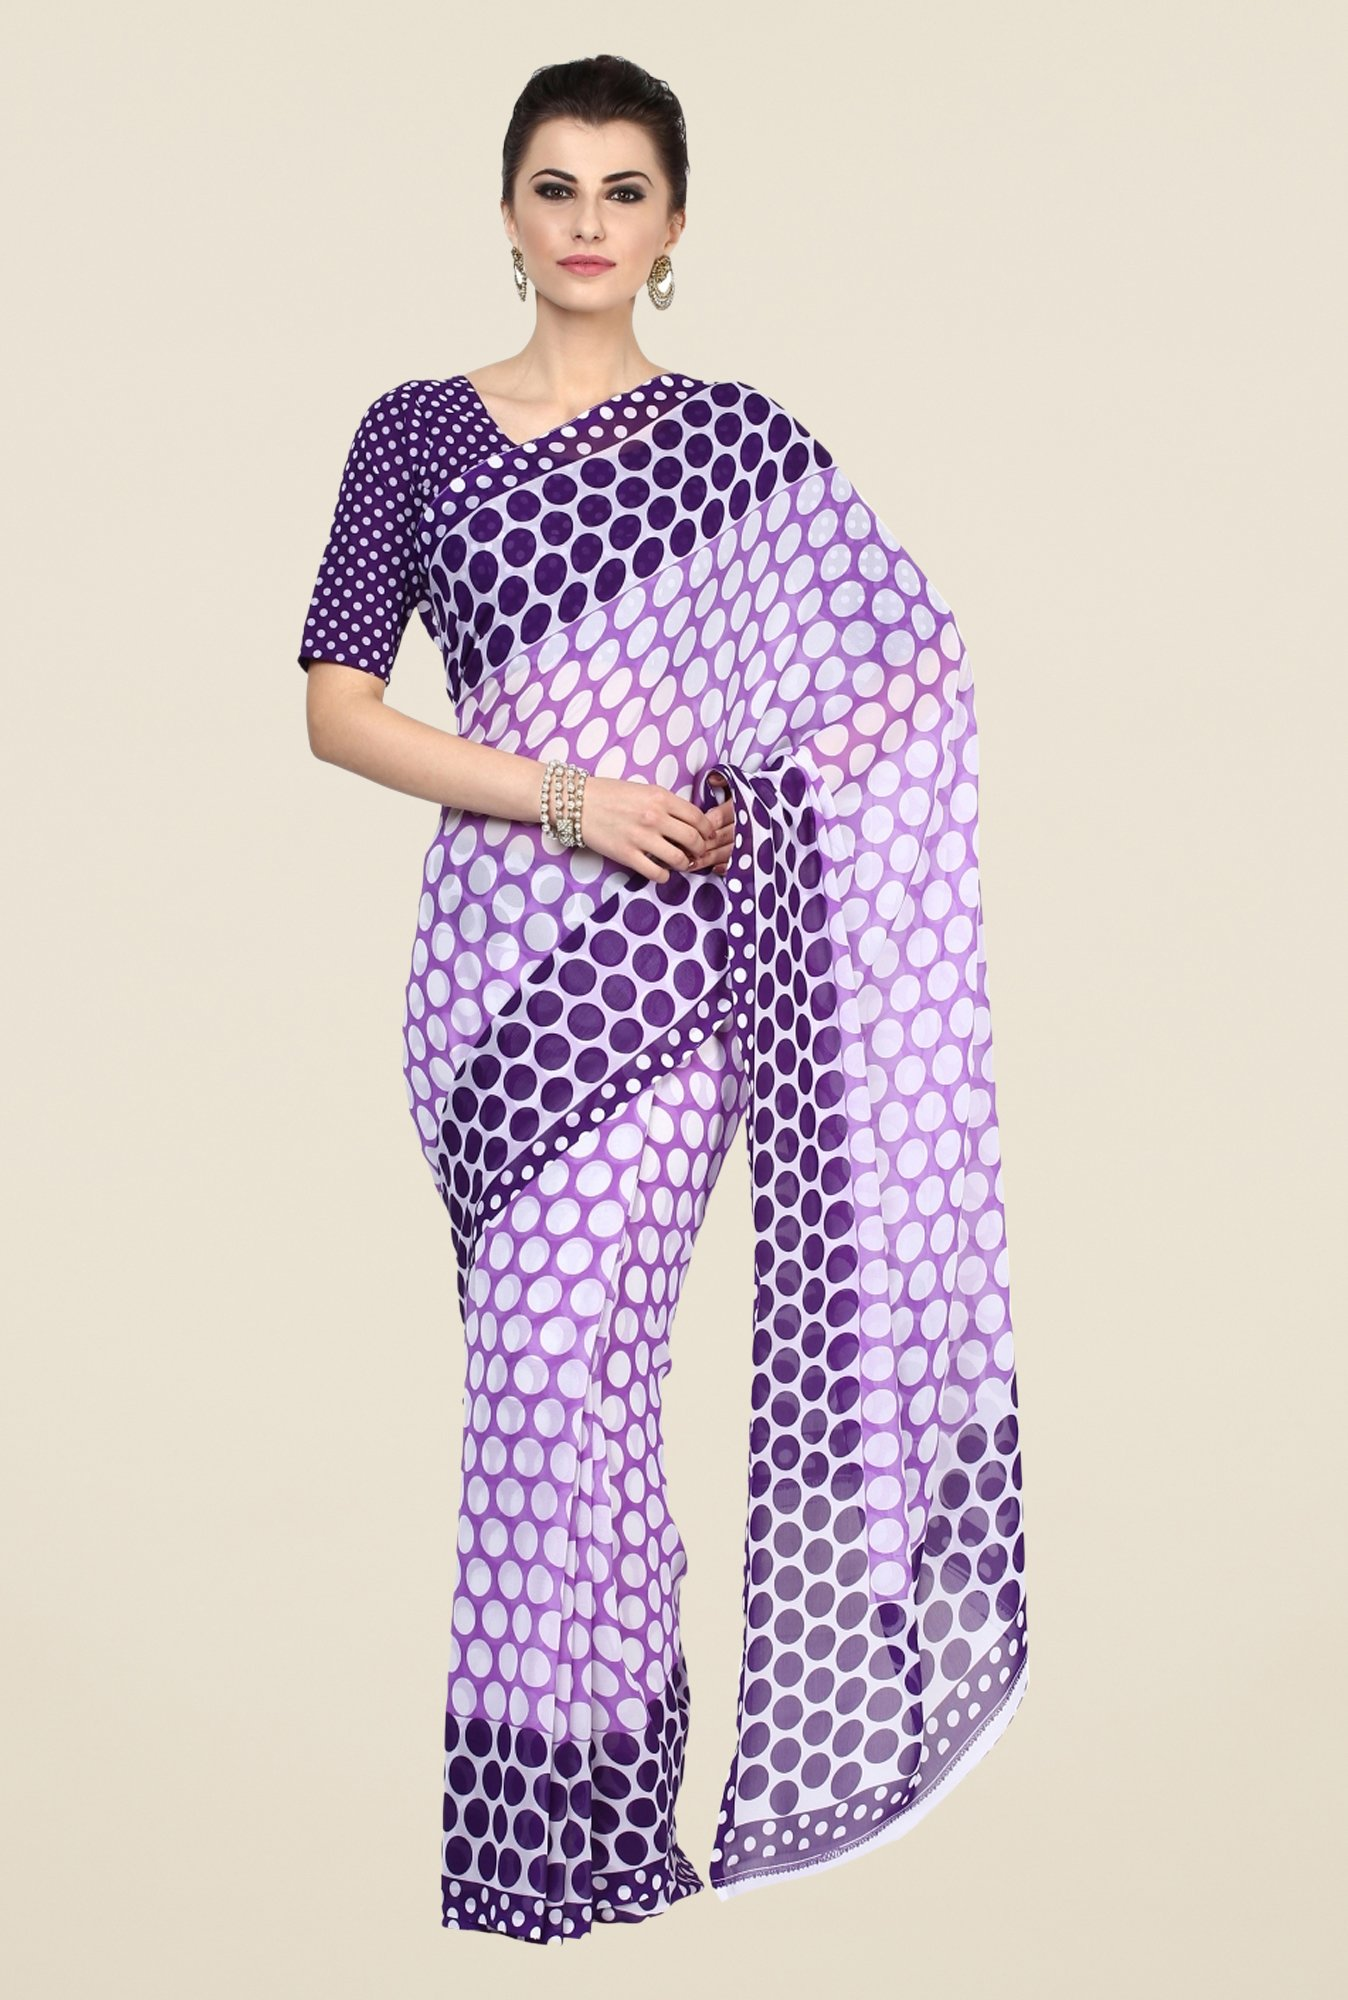 Triveni Purple Polka Dots Faux Georgette Saree